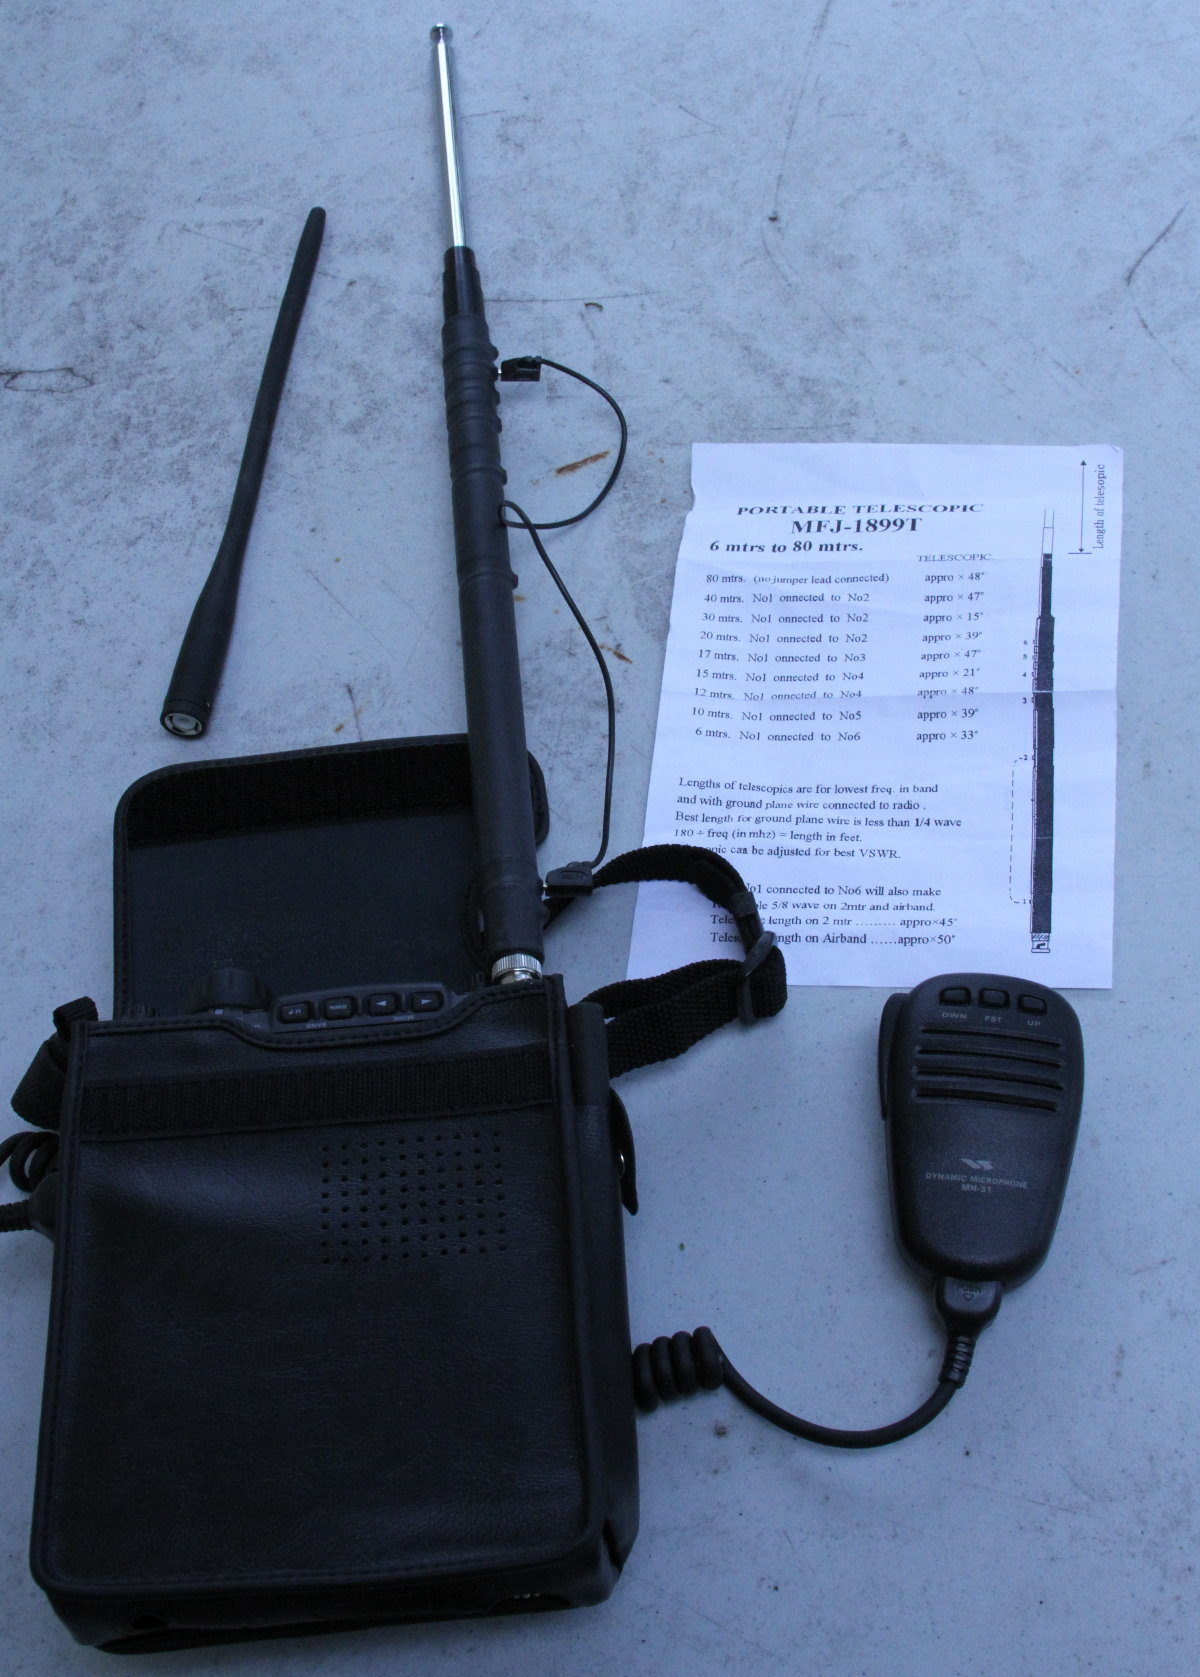 Prepping 101: Radio Silence! - The Mobile Survival HAM